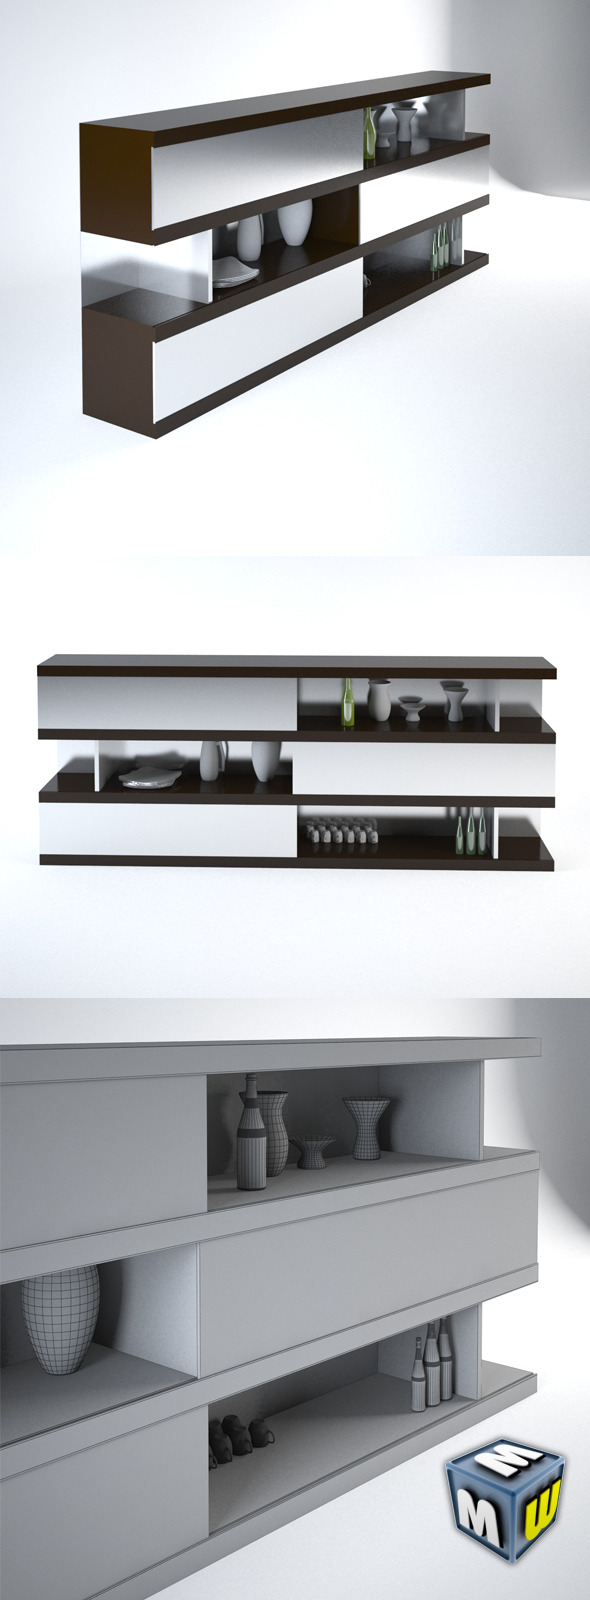 Shelf MAX 2011 - 3DOcean Item for Sale